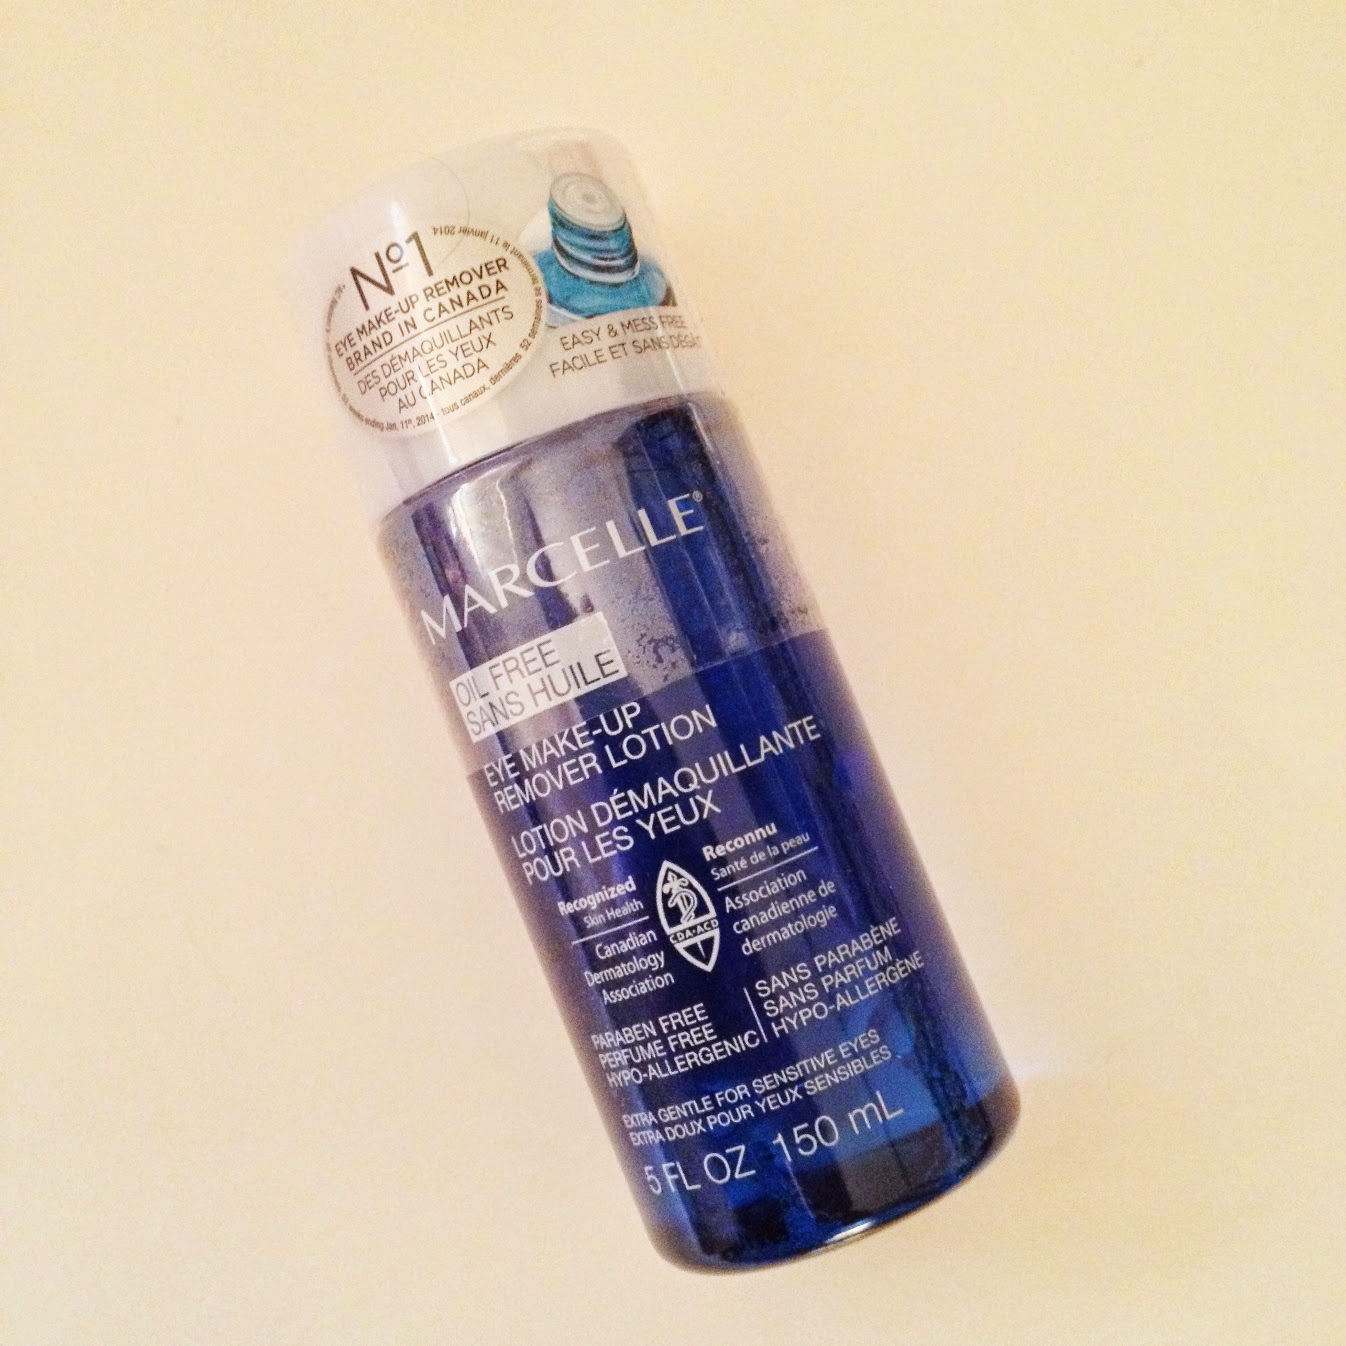 Marcelle Oil Free Eye Makeup Remover